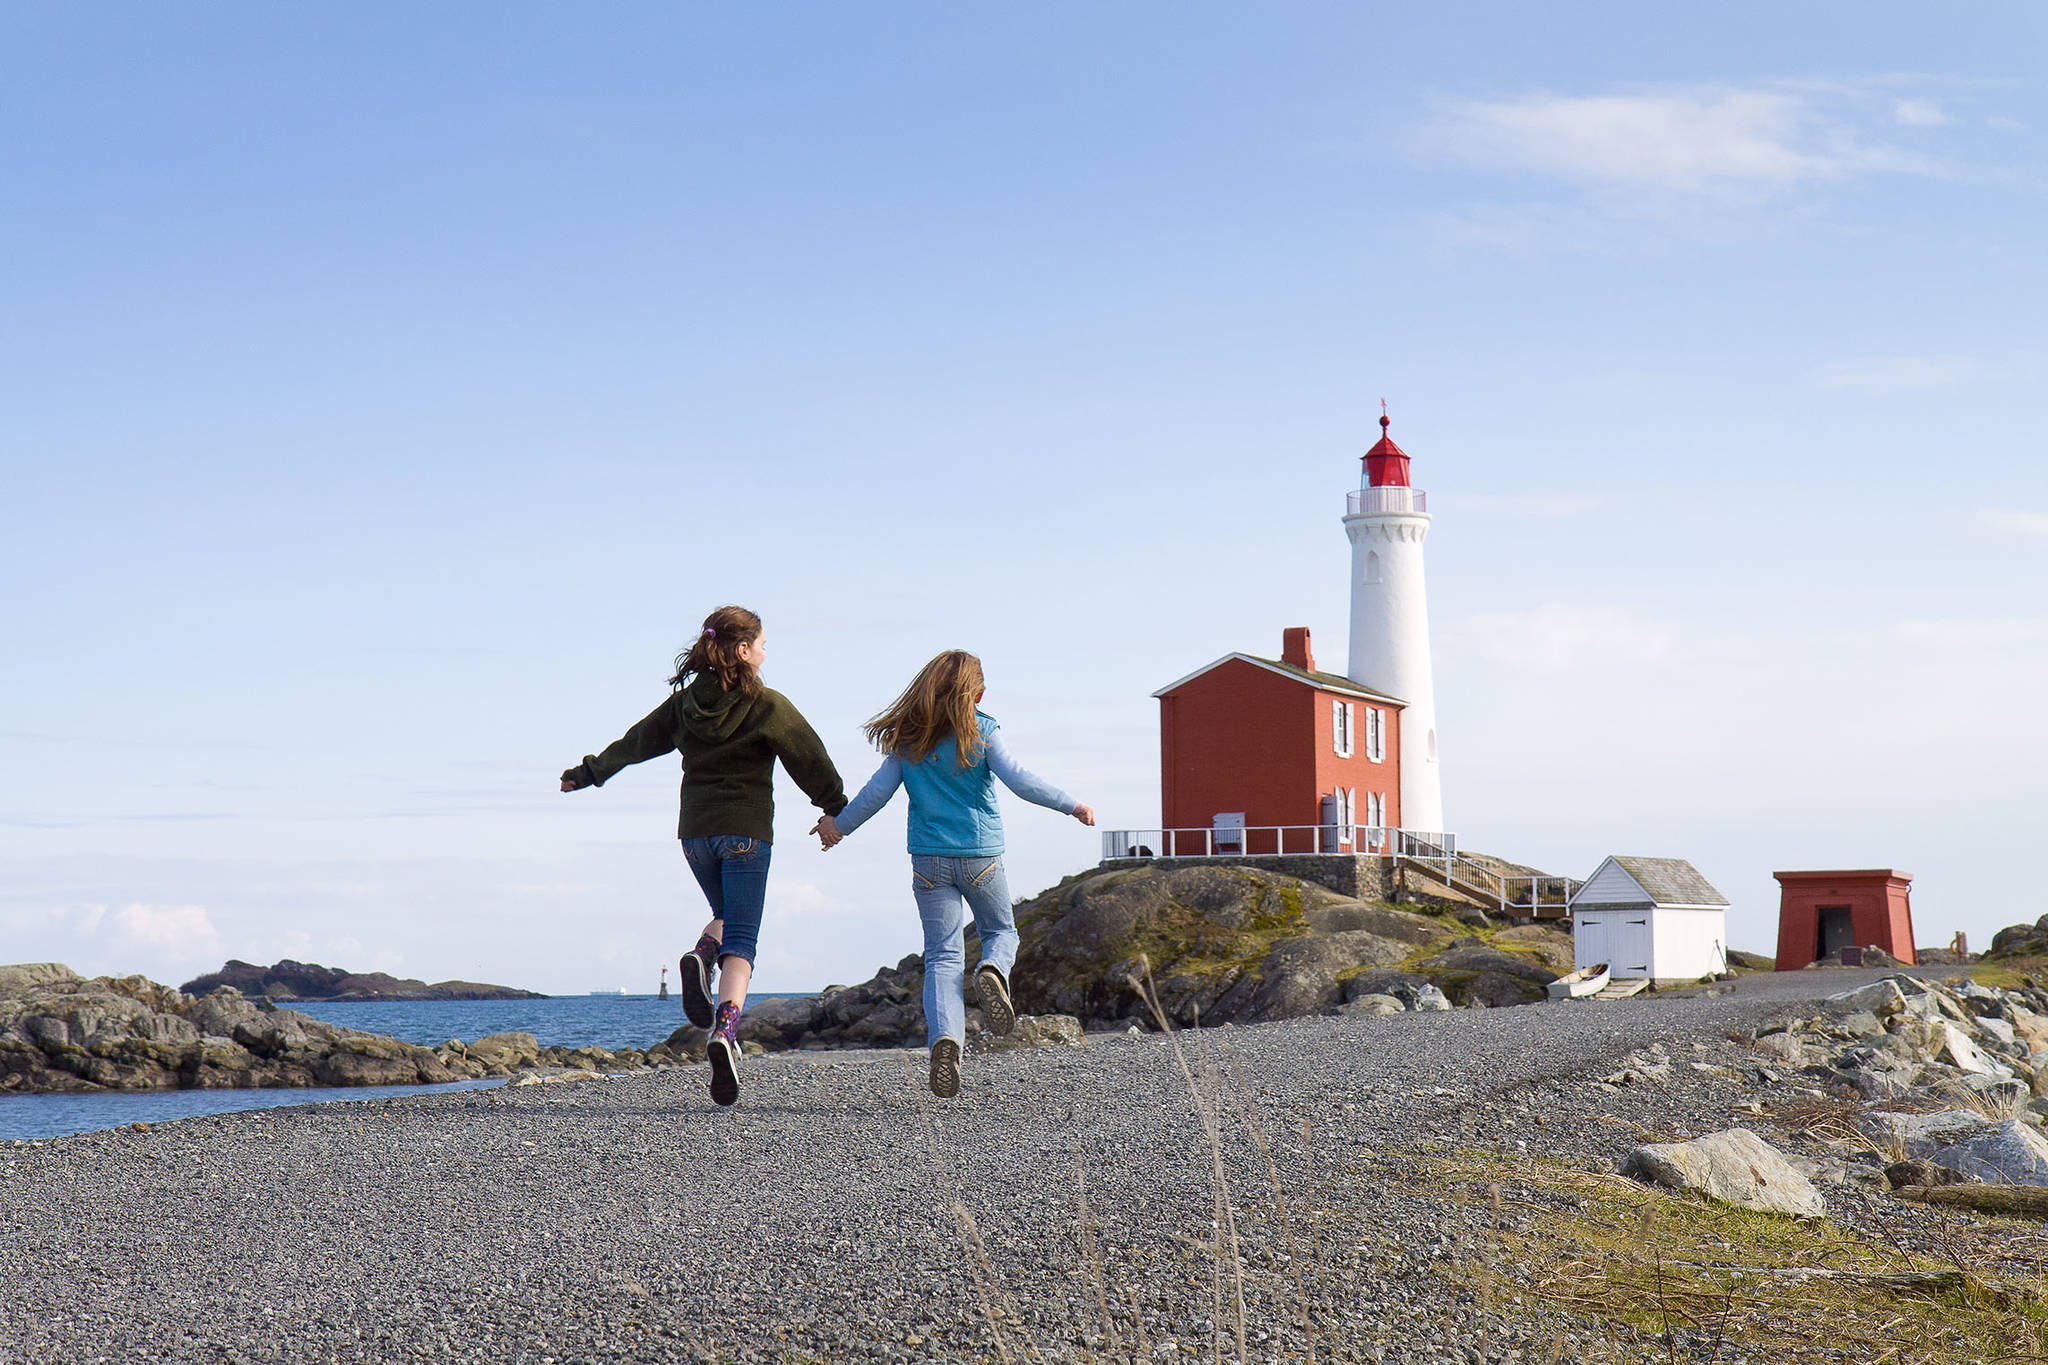 Children run toward the Fisgard Lighthouse National Historic Site, which saw its 160th birthday marked on Nov. 16. (Photo courtesy of Parks Canada)